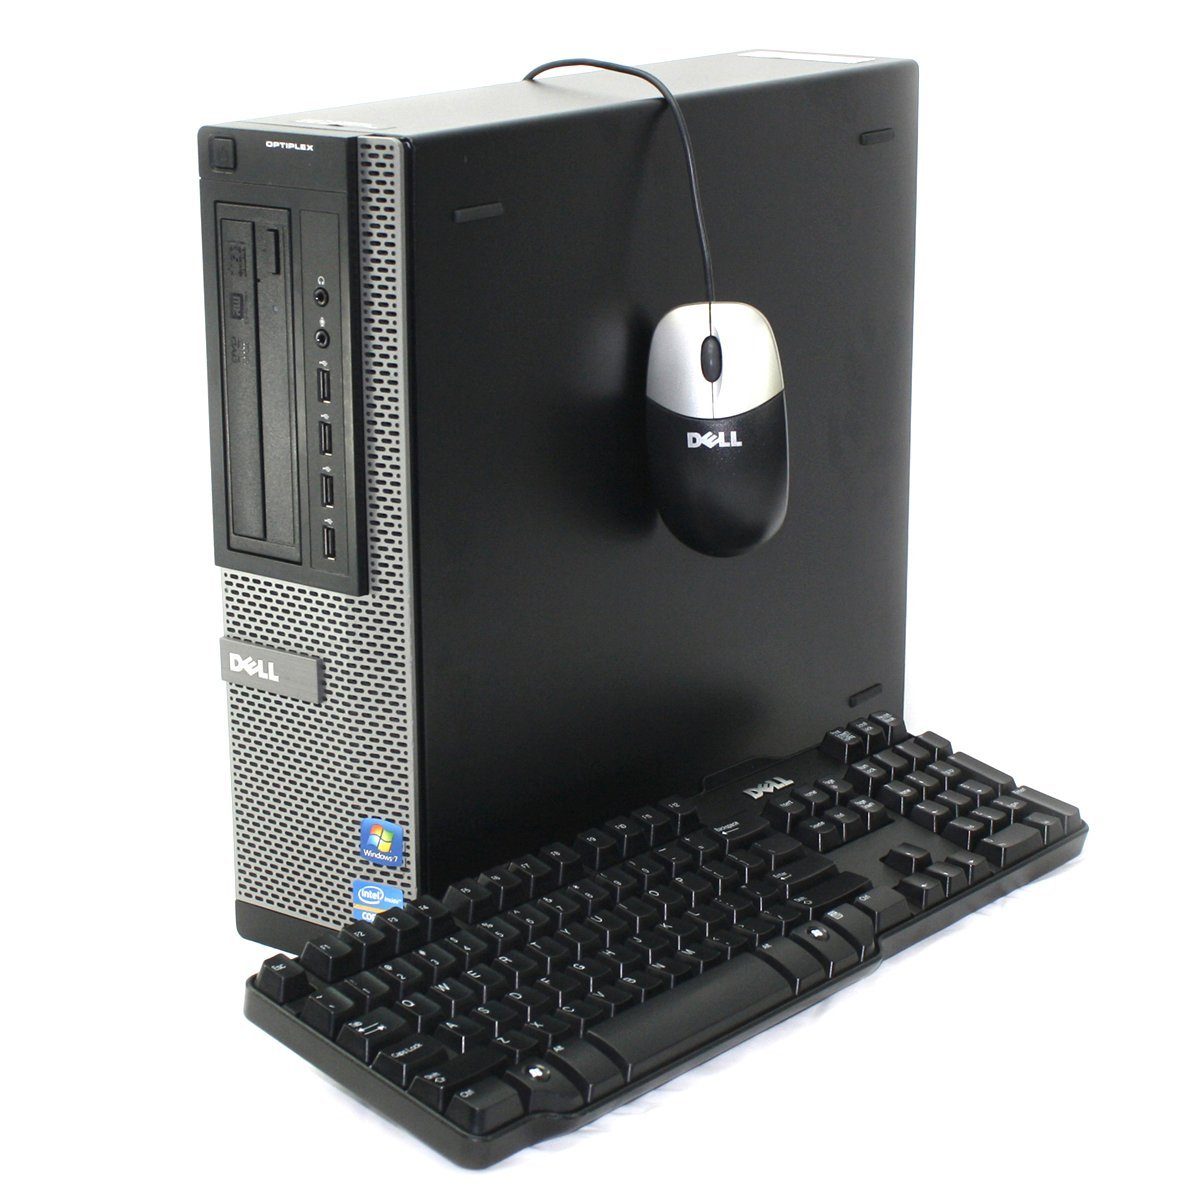 Refurbished - Dell Optiplex 7010 High Performance Business Desktop - Intel Quad Core i5-3470 3.2GHz, 8GB DDR3 Ram, 1TB Hard Drive, DVD+/-RW, Windows 7 Professional (by RefurbTek)